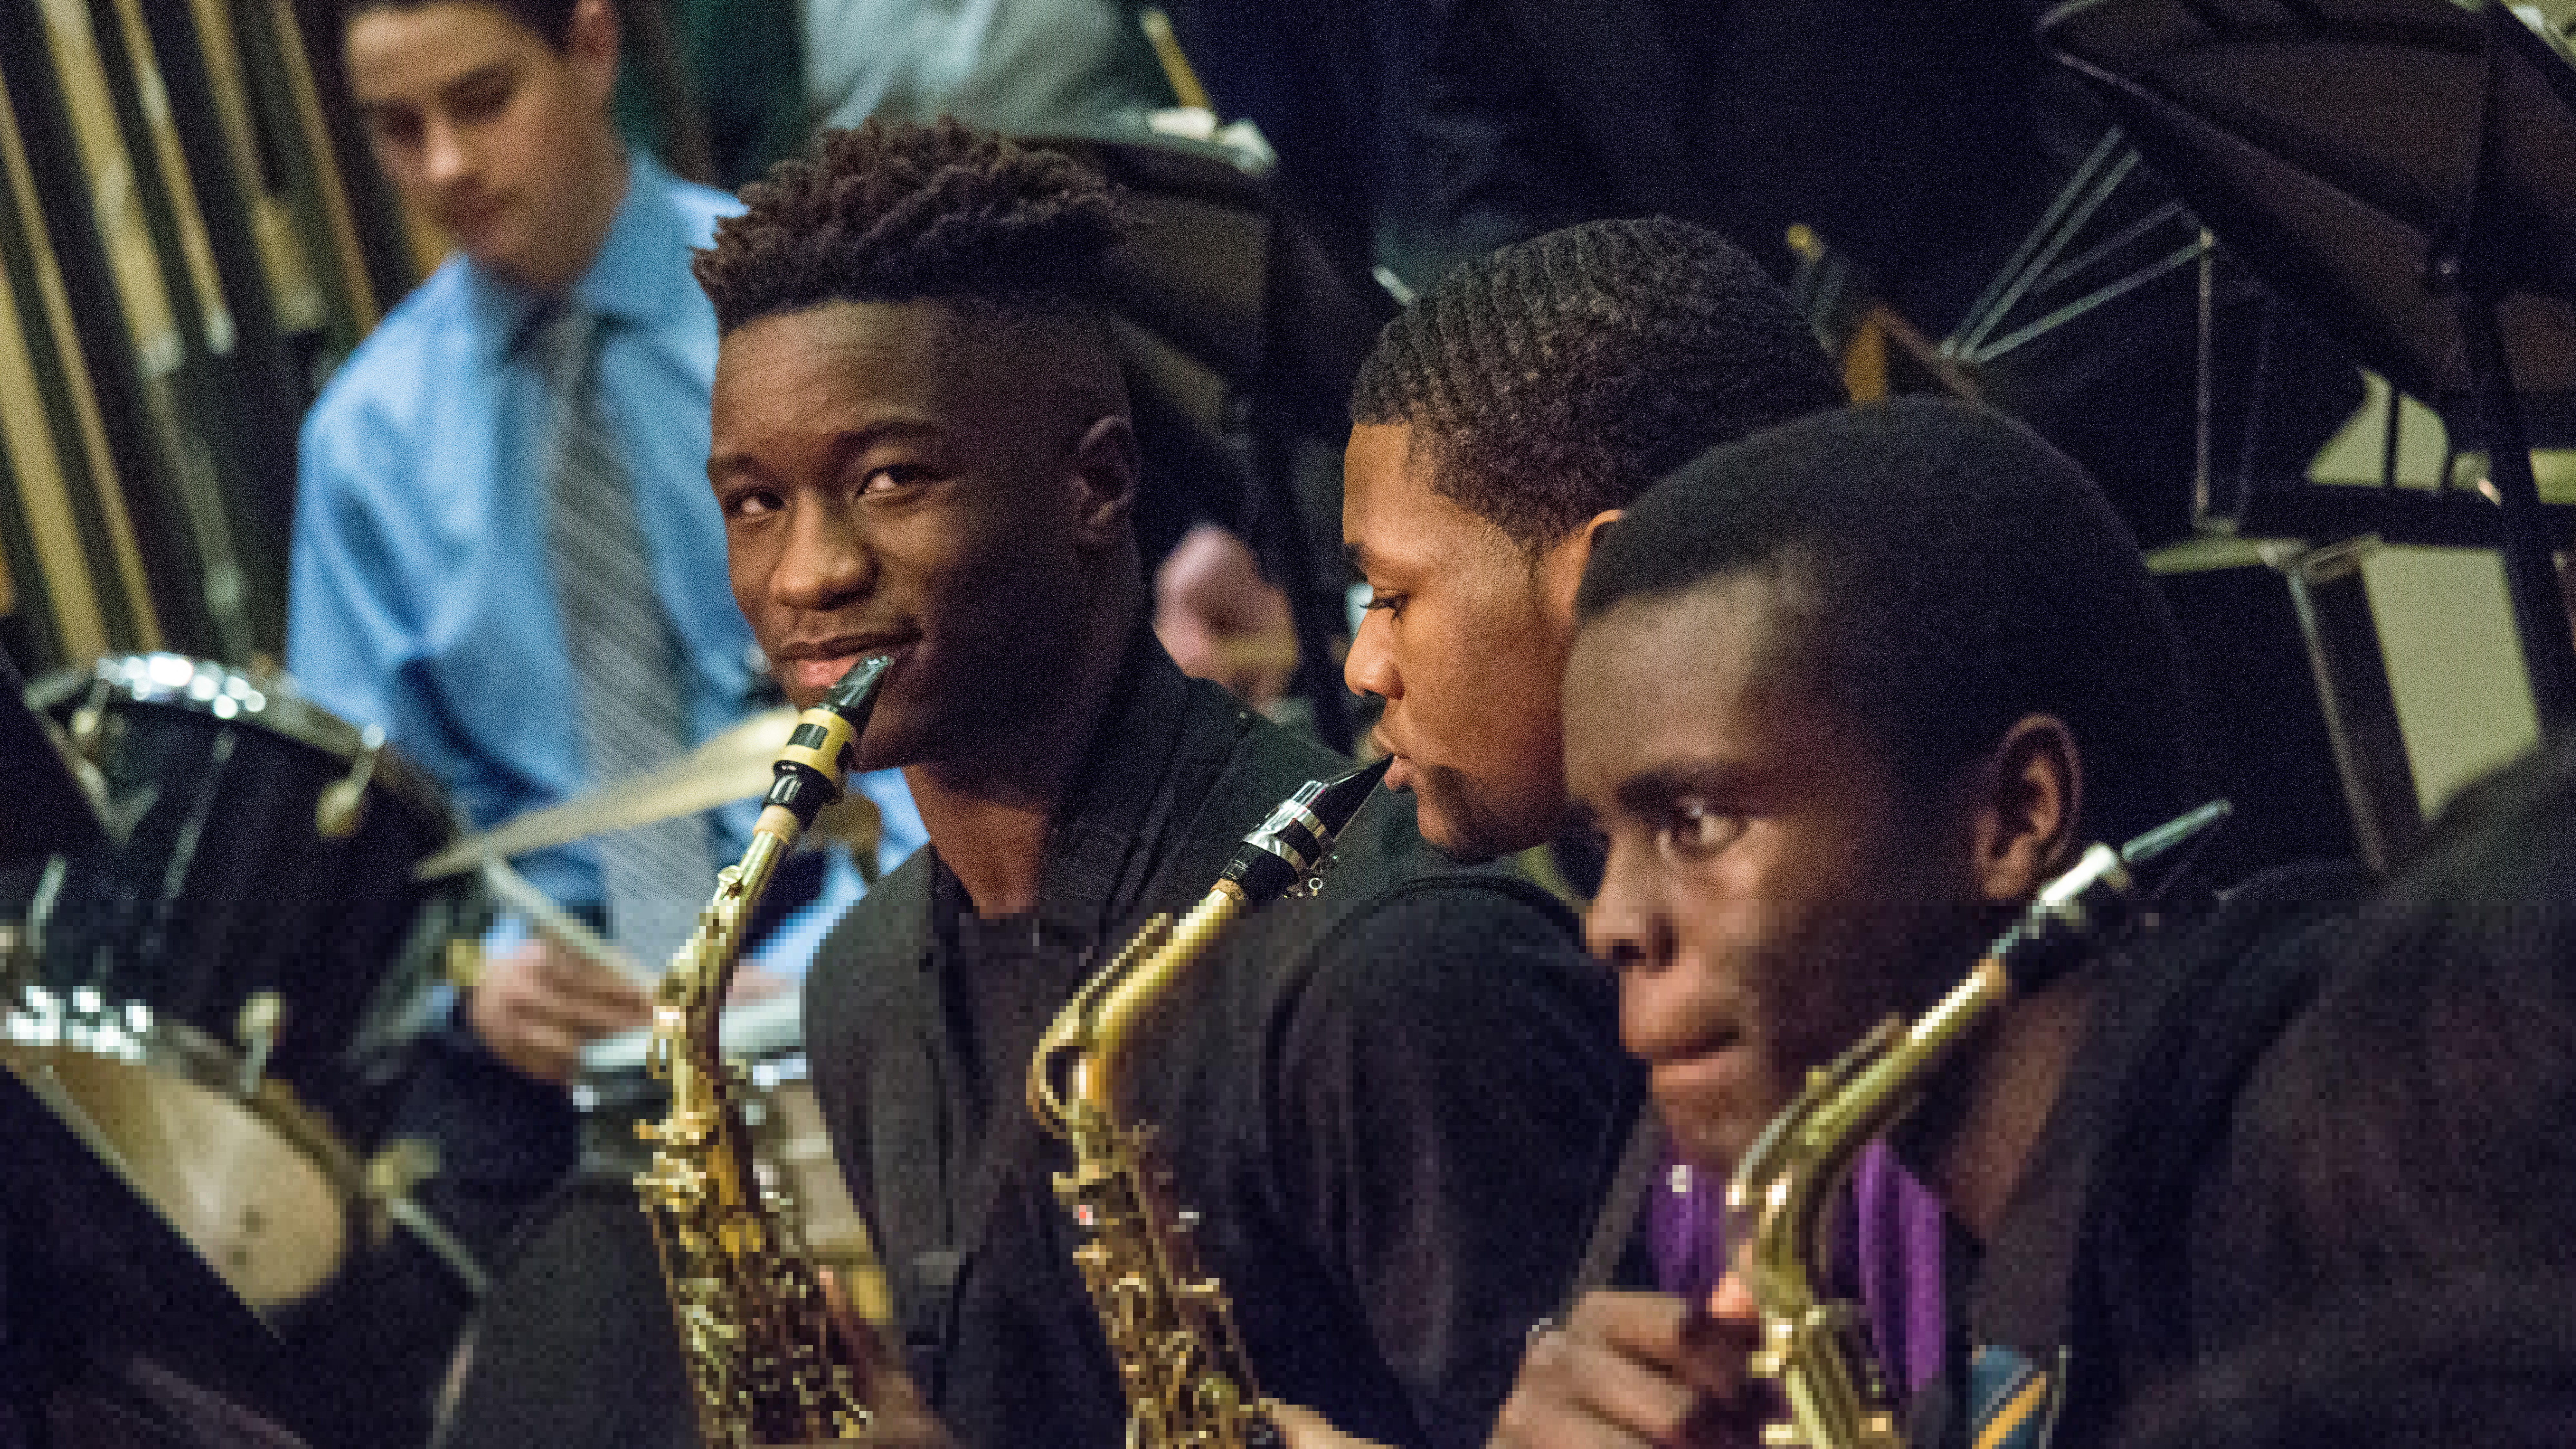 Students playing saxophone during a concert.